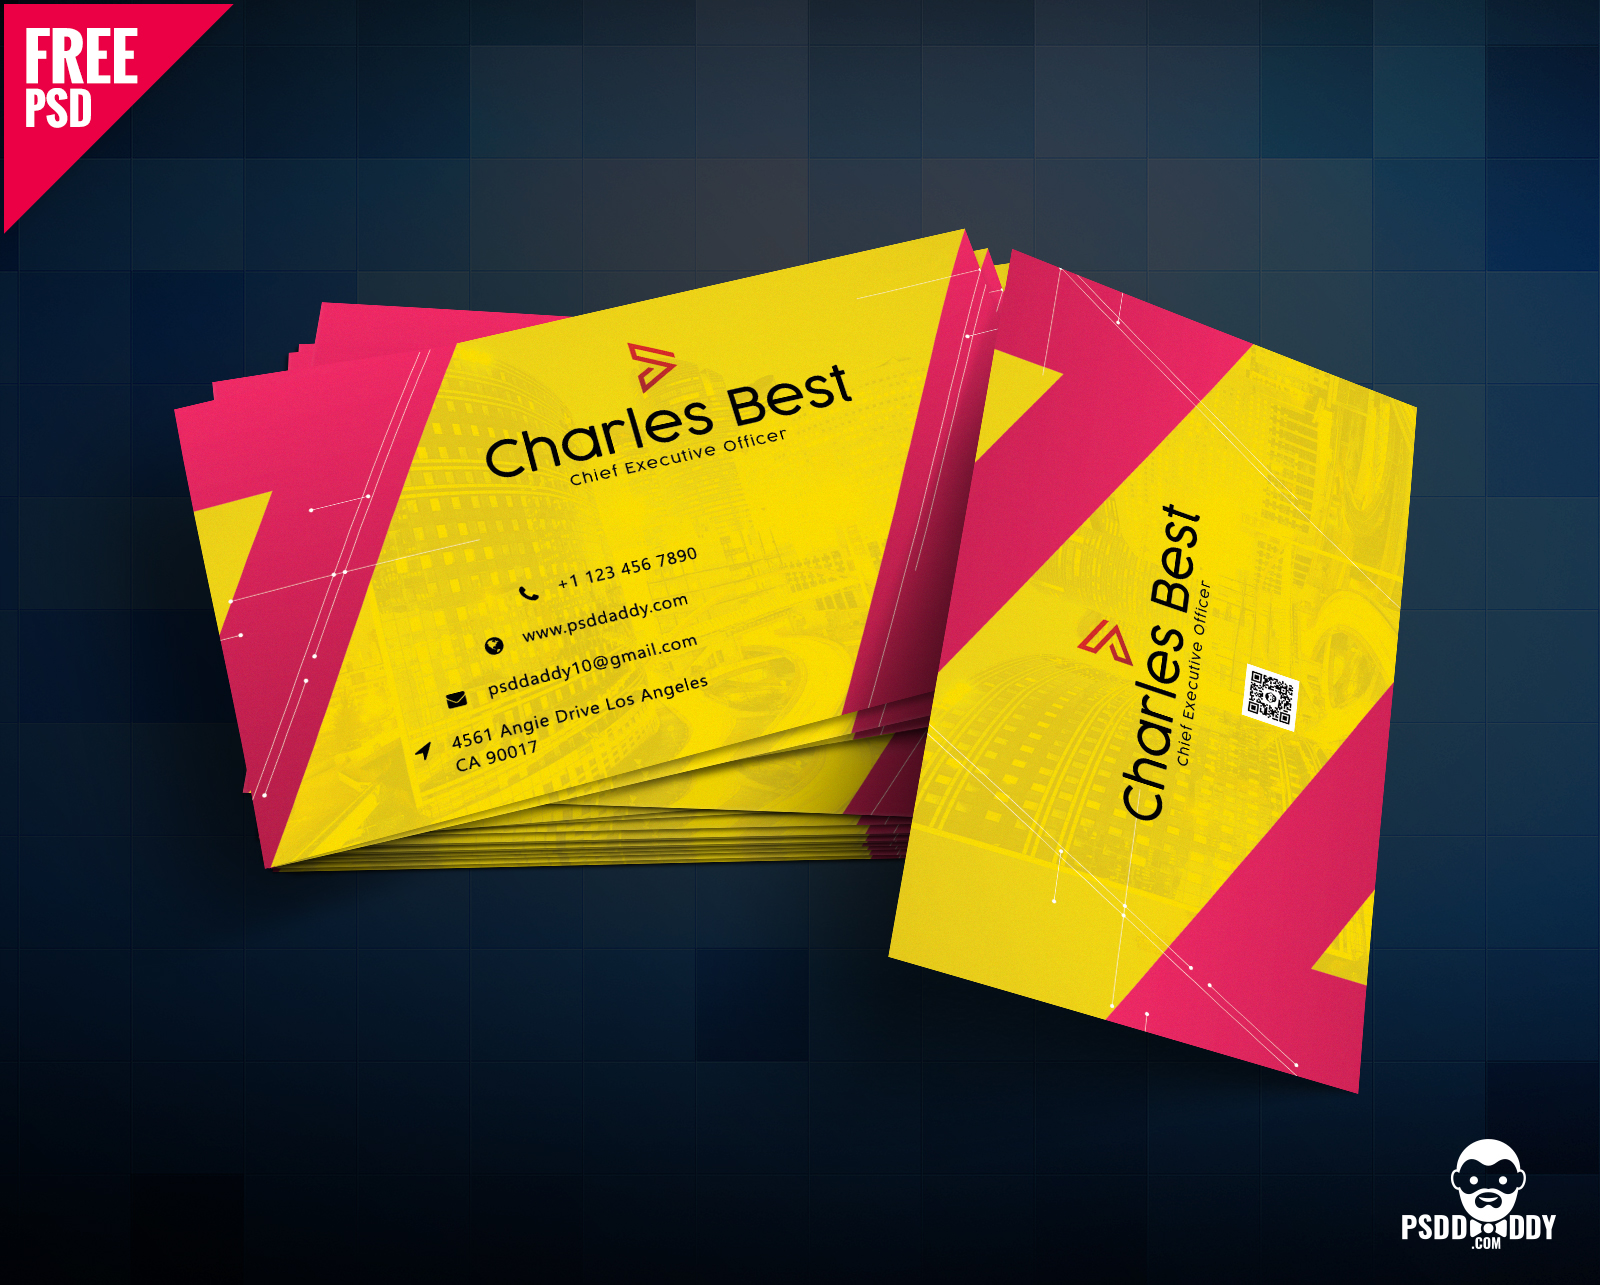 Download Creative Business Card Free PSD PsdDaddycom - Construction business card templates download free